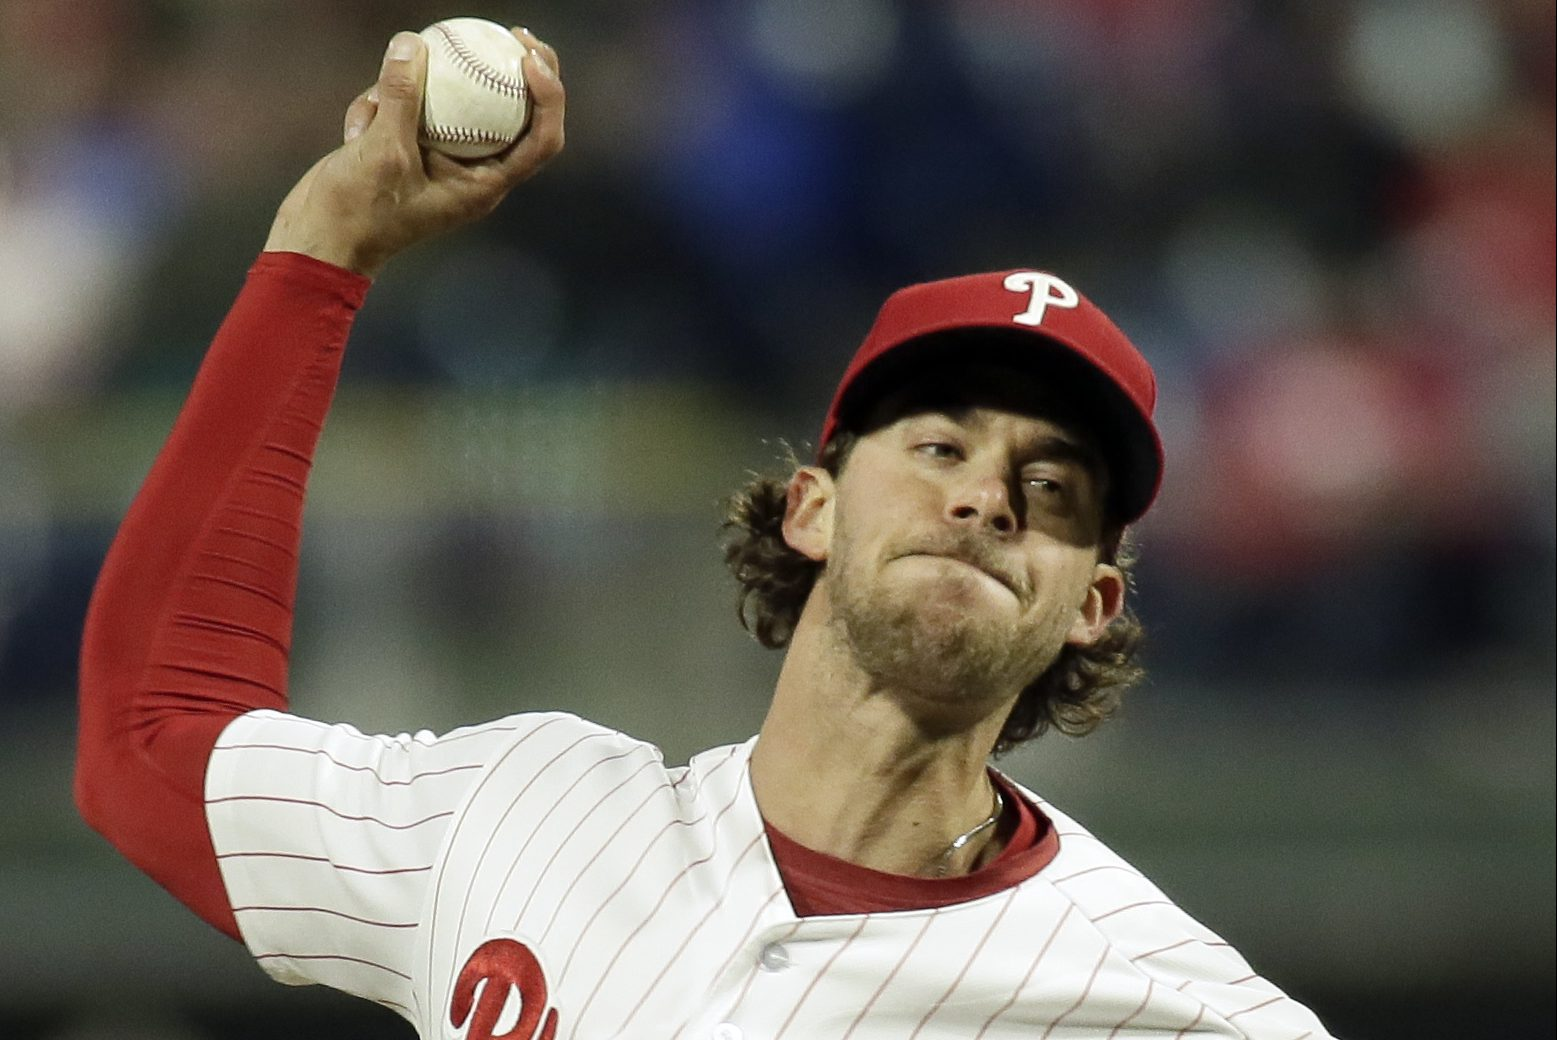 Pitcher Aaron Nola allowed just one run on three hits over eight innings in the Phillies´ 6-1 win over Cincinnati Tuesday night at Citizens Bank Park.